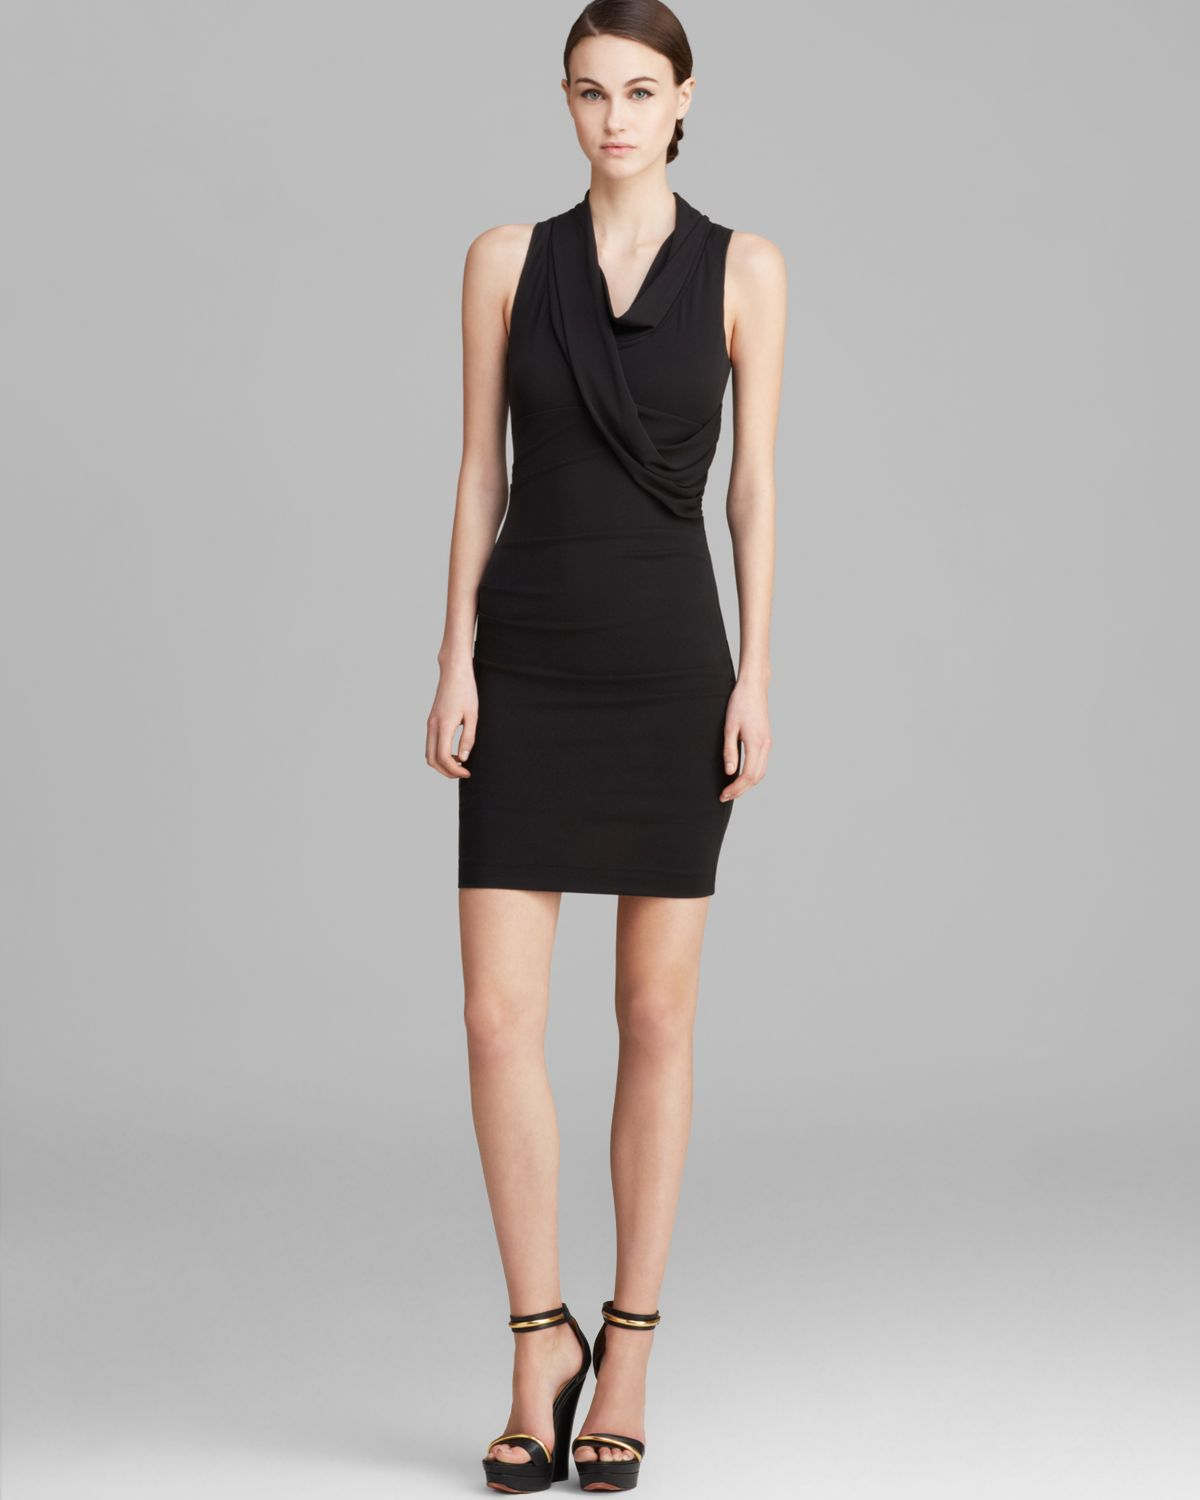 Nicole Miller Dress Sleeveless Cowlneck in Black  Lyst